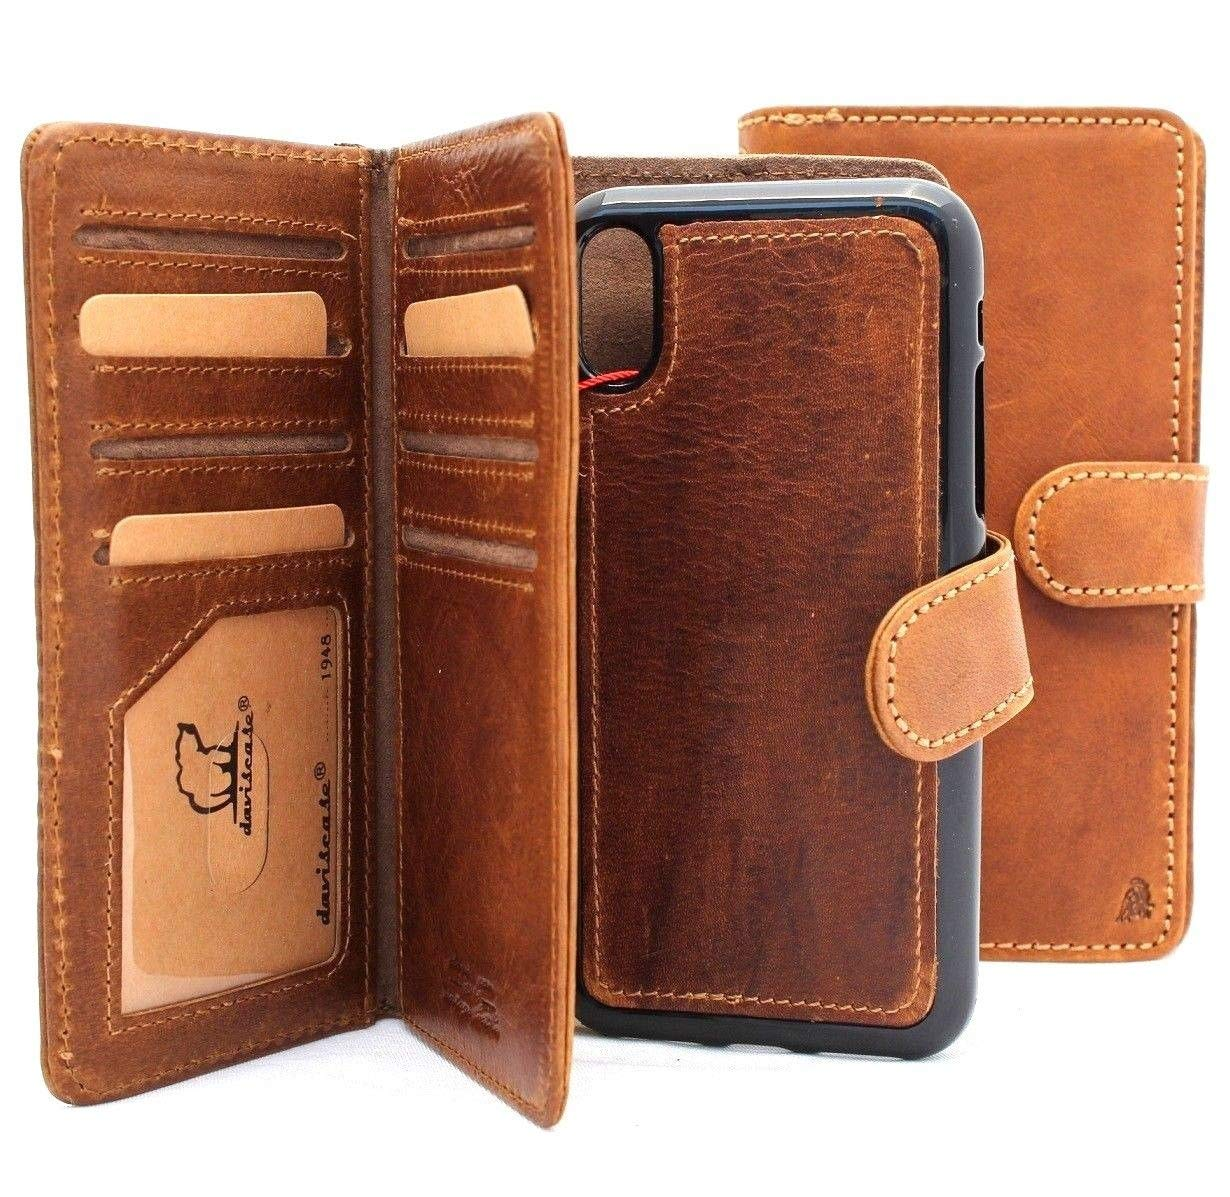 Genuine Leather Case for iPhone Xs max Book Wallet Handmade Cover Luxury Cards Slots Magnetic Holder Closure Vintage Detachable DavisCase pro B26 xsmax